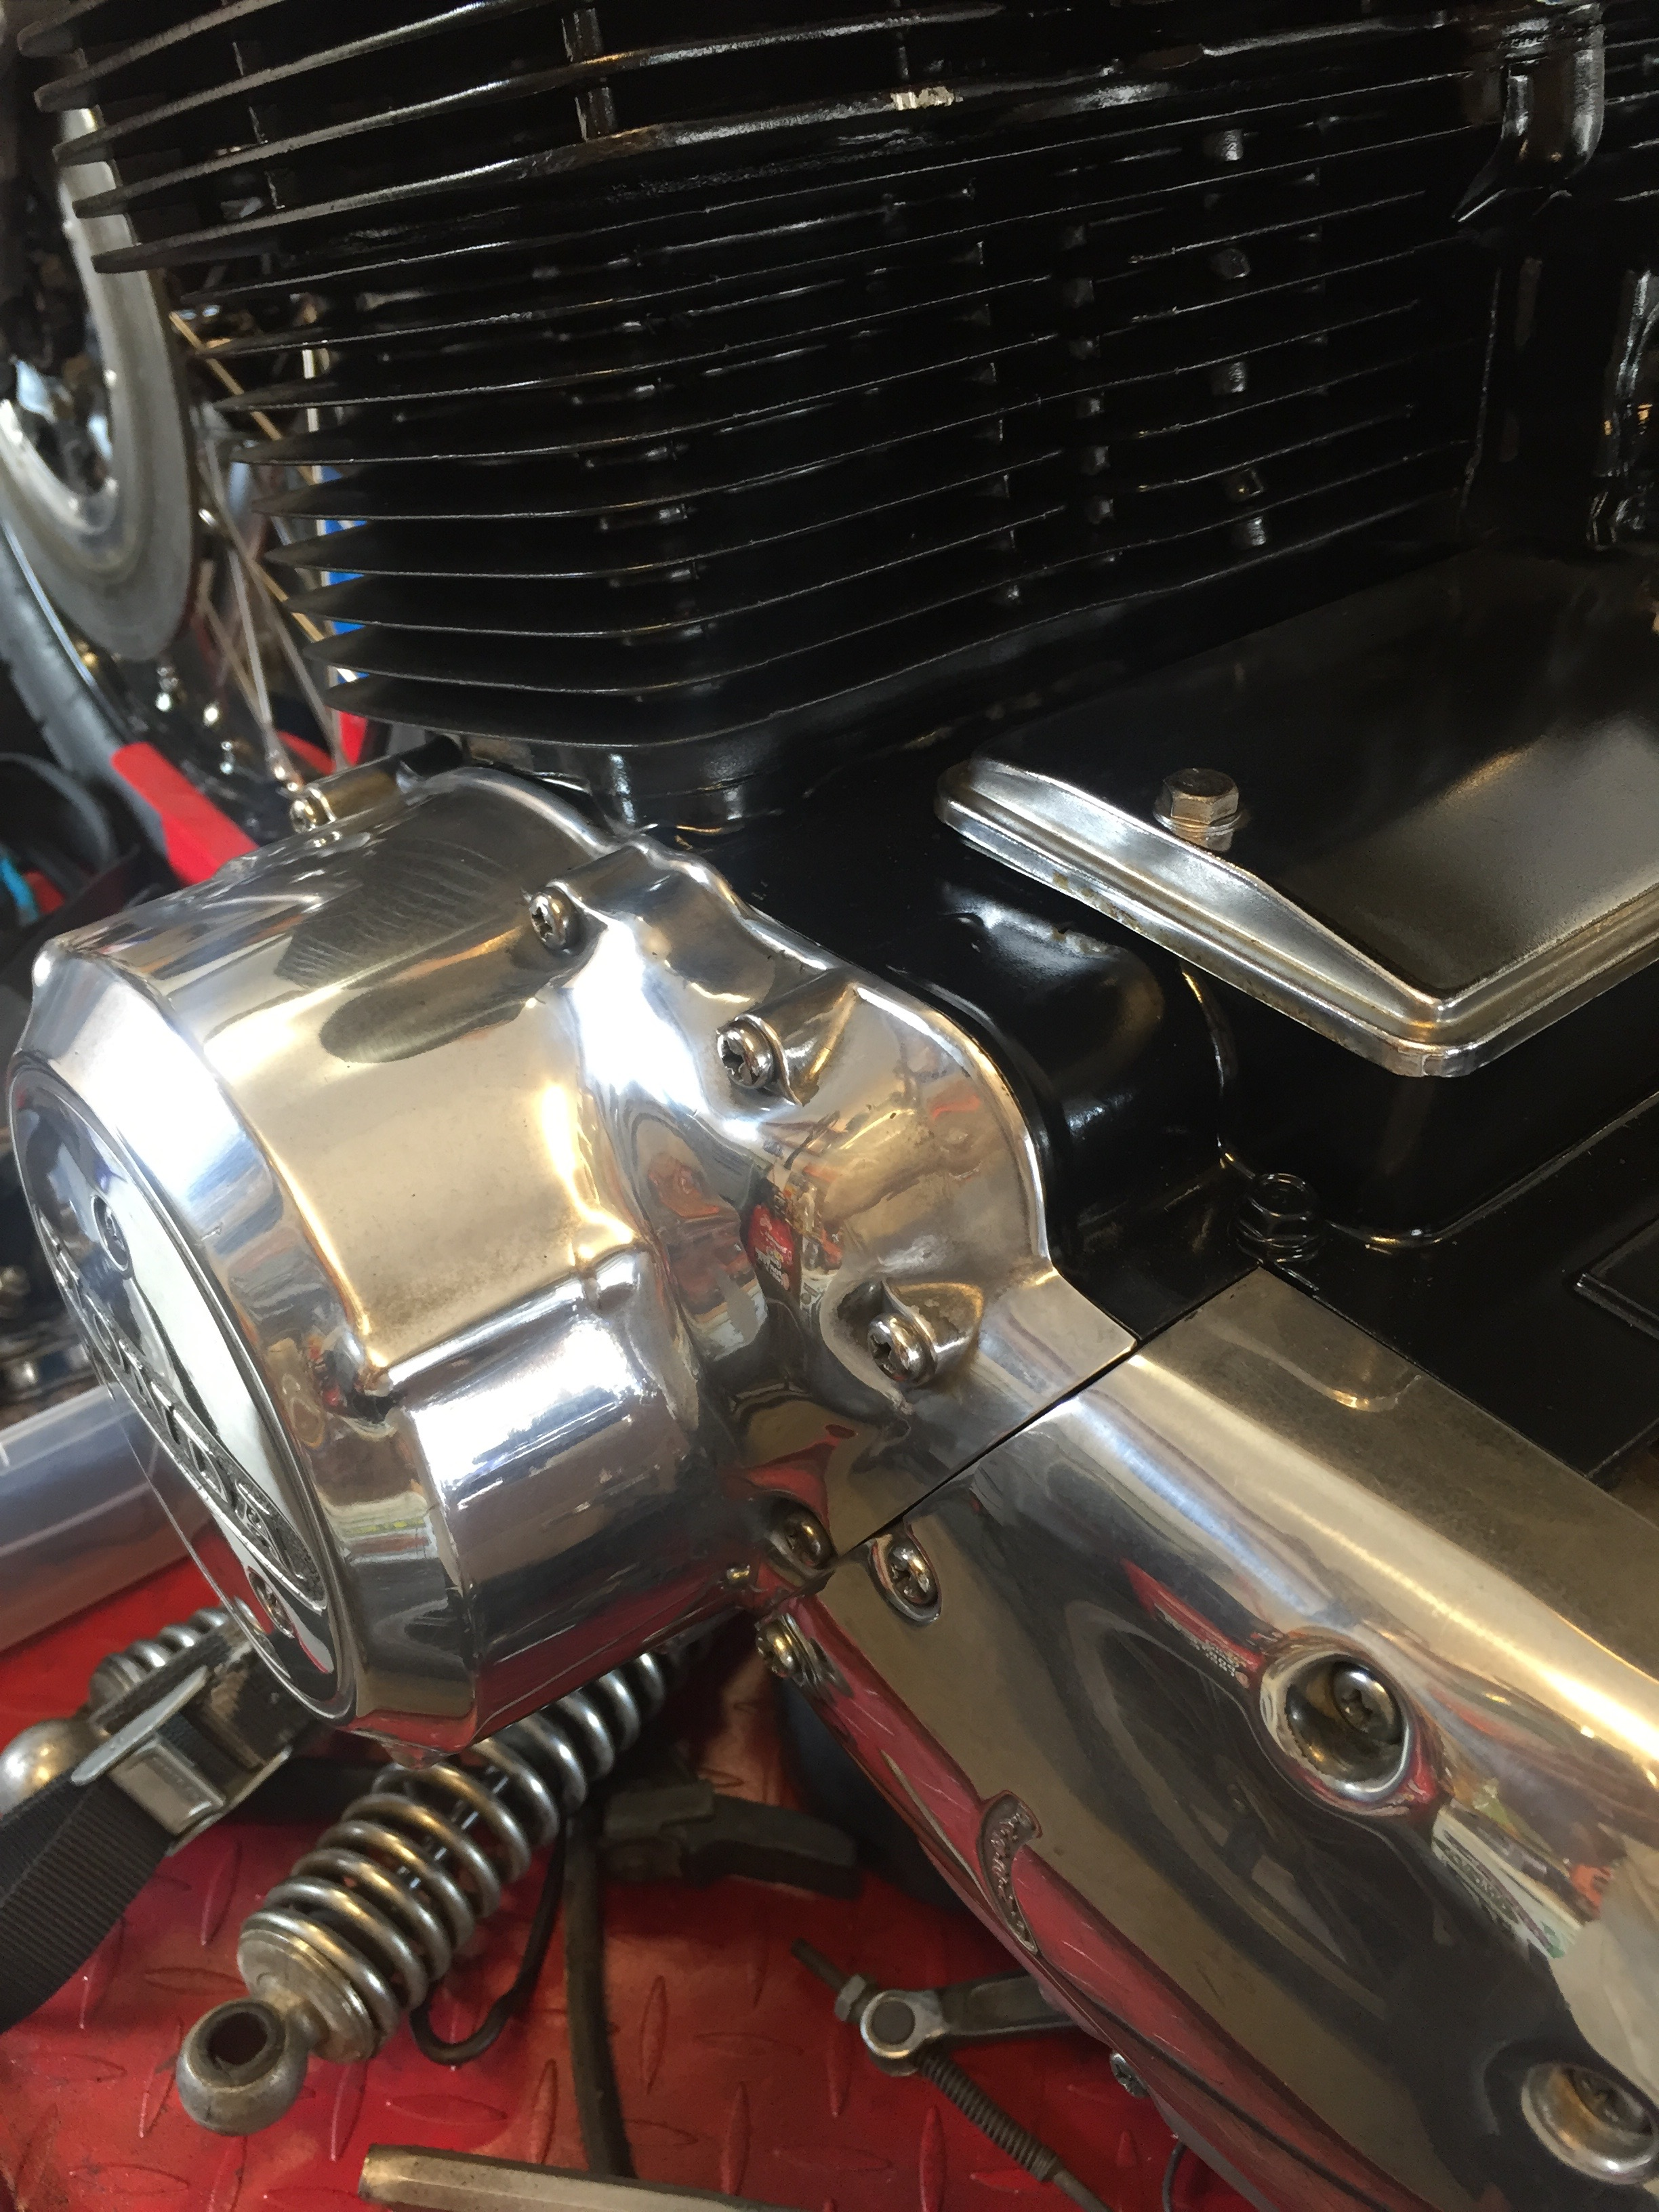 More polishing on the engine casings. Polished aluminum is so pretty. It screams vintage while looking brand new.